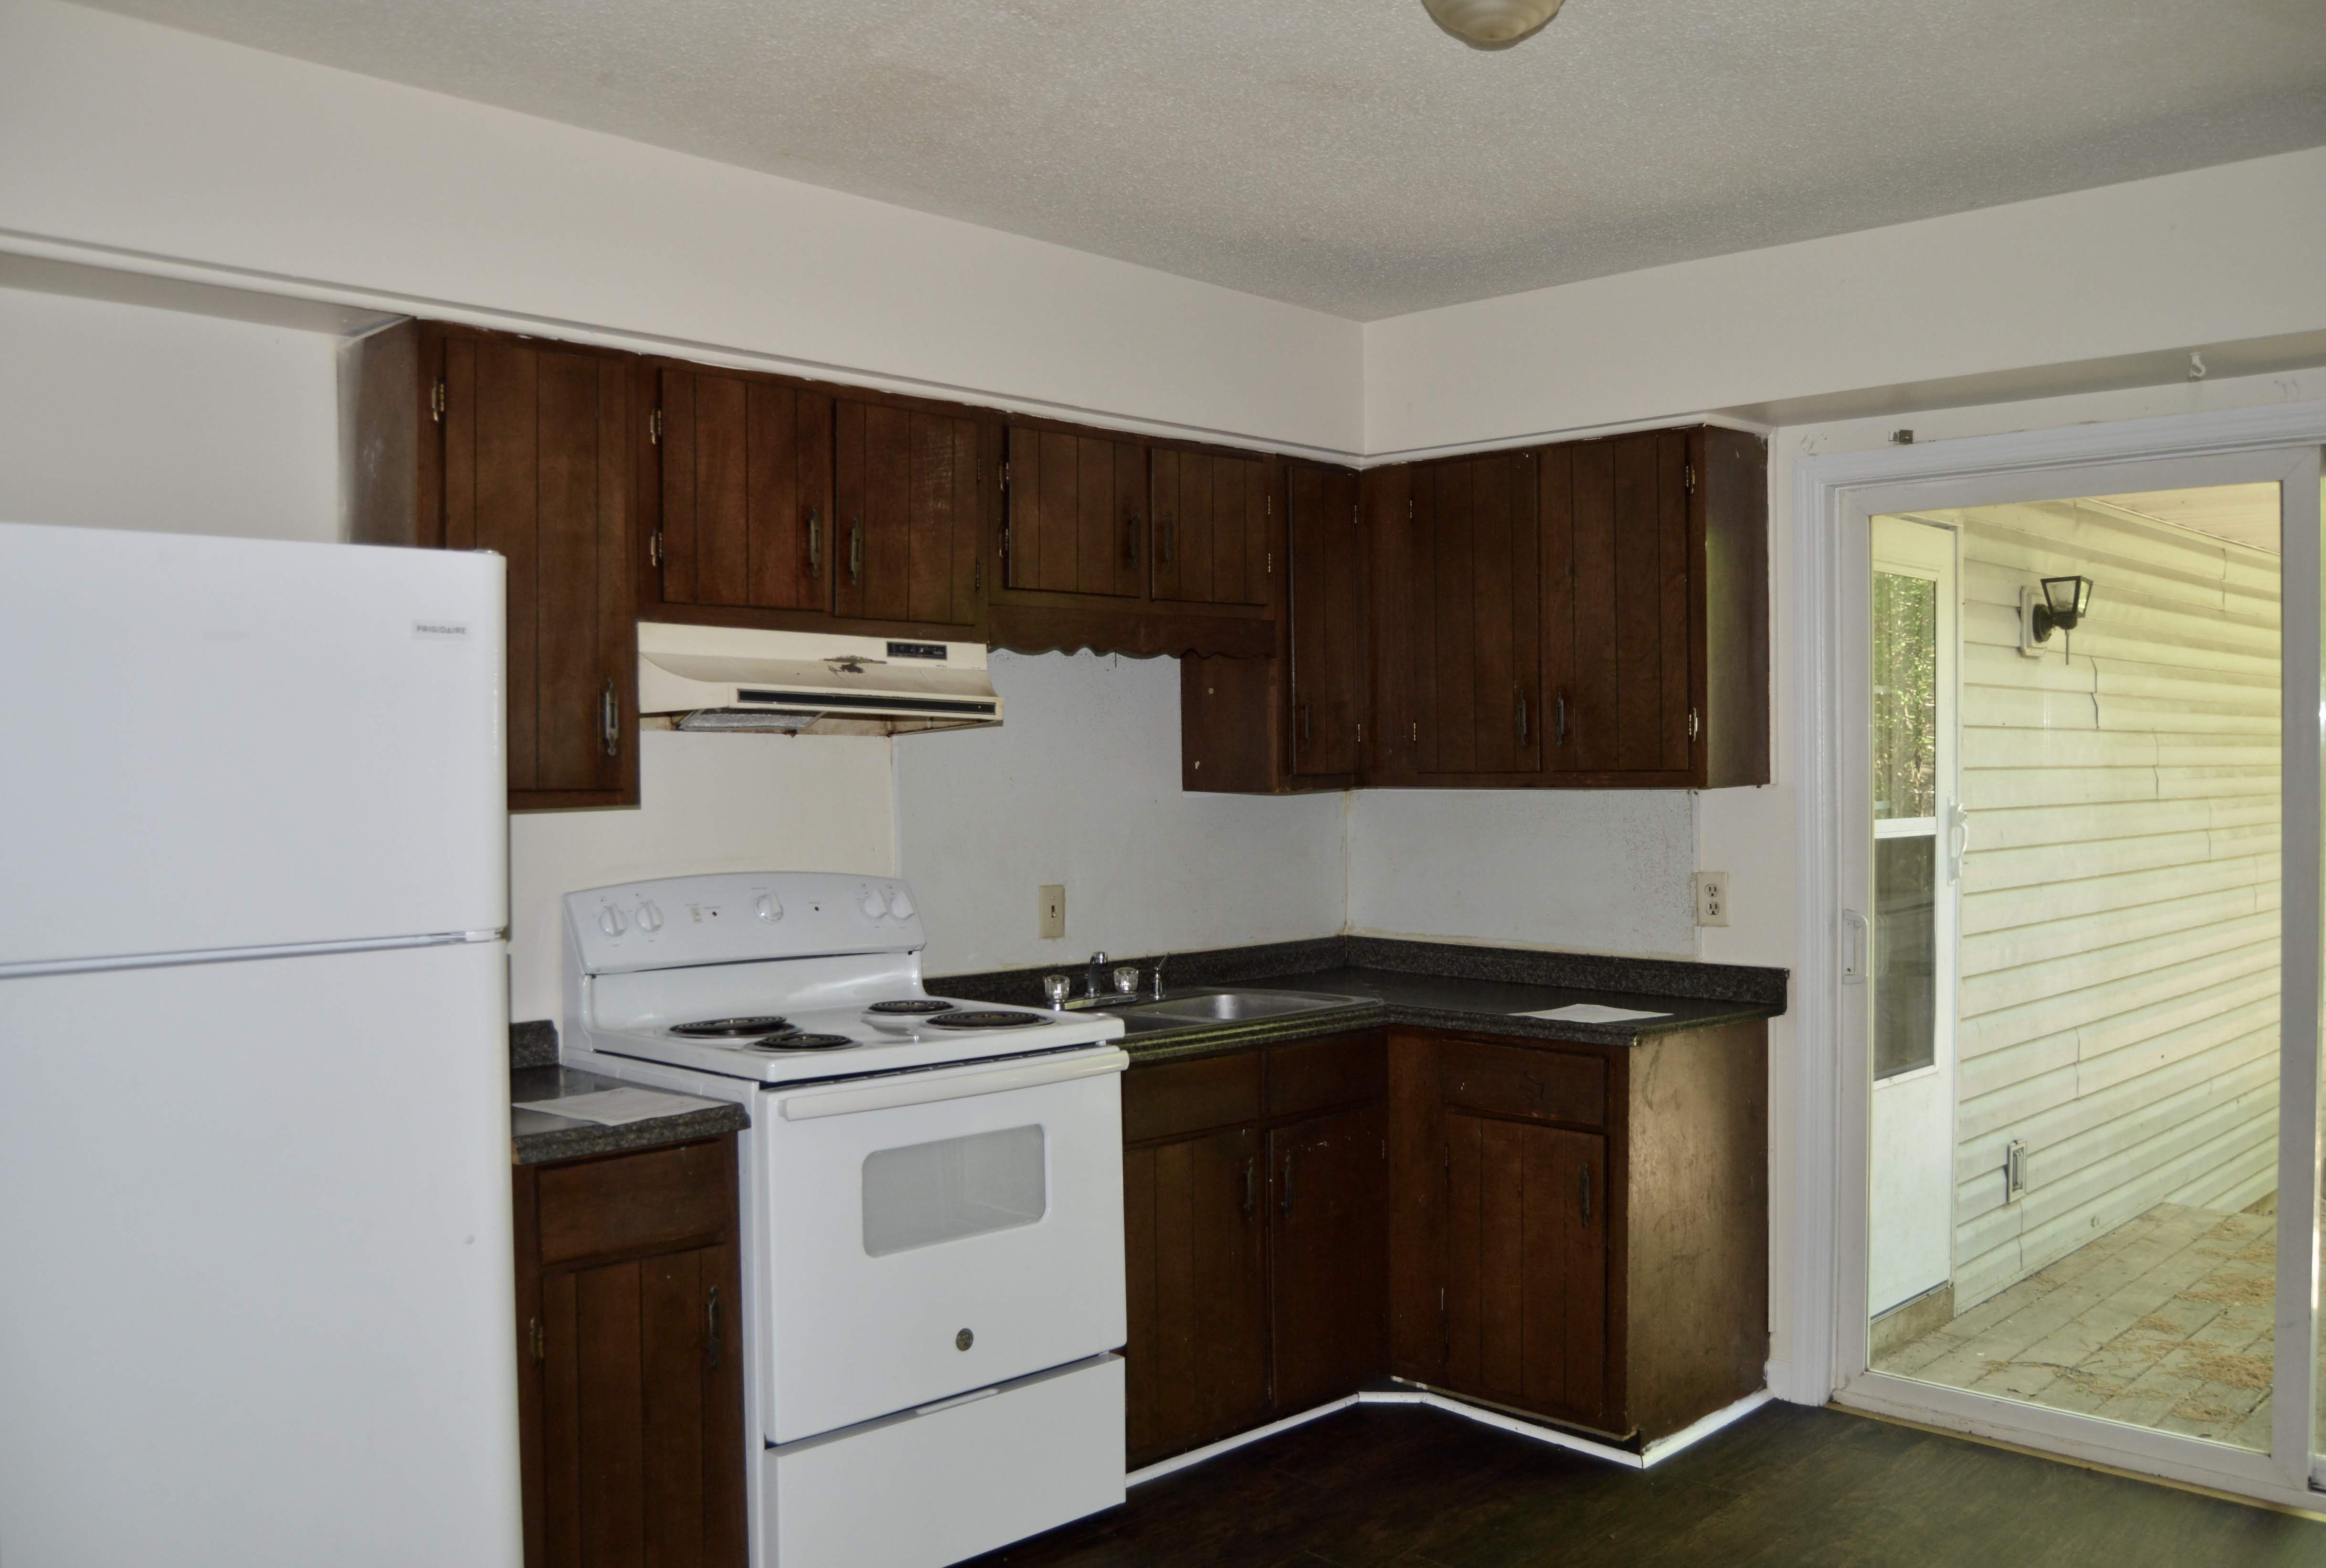 4 Bedrooms With 2 Baths Single Family House Available Now At 4007 15th Ave Chattanooga Call Now To Sched House Rental Renting A House Furnished Apartment